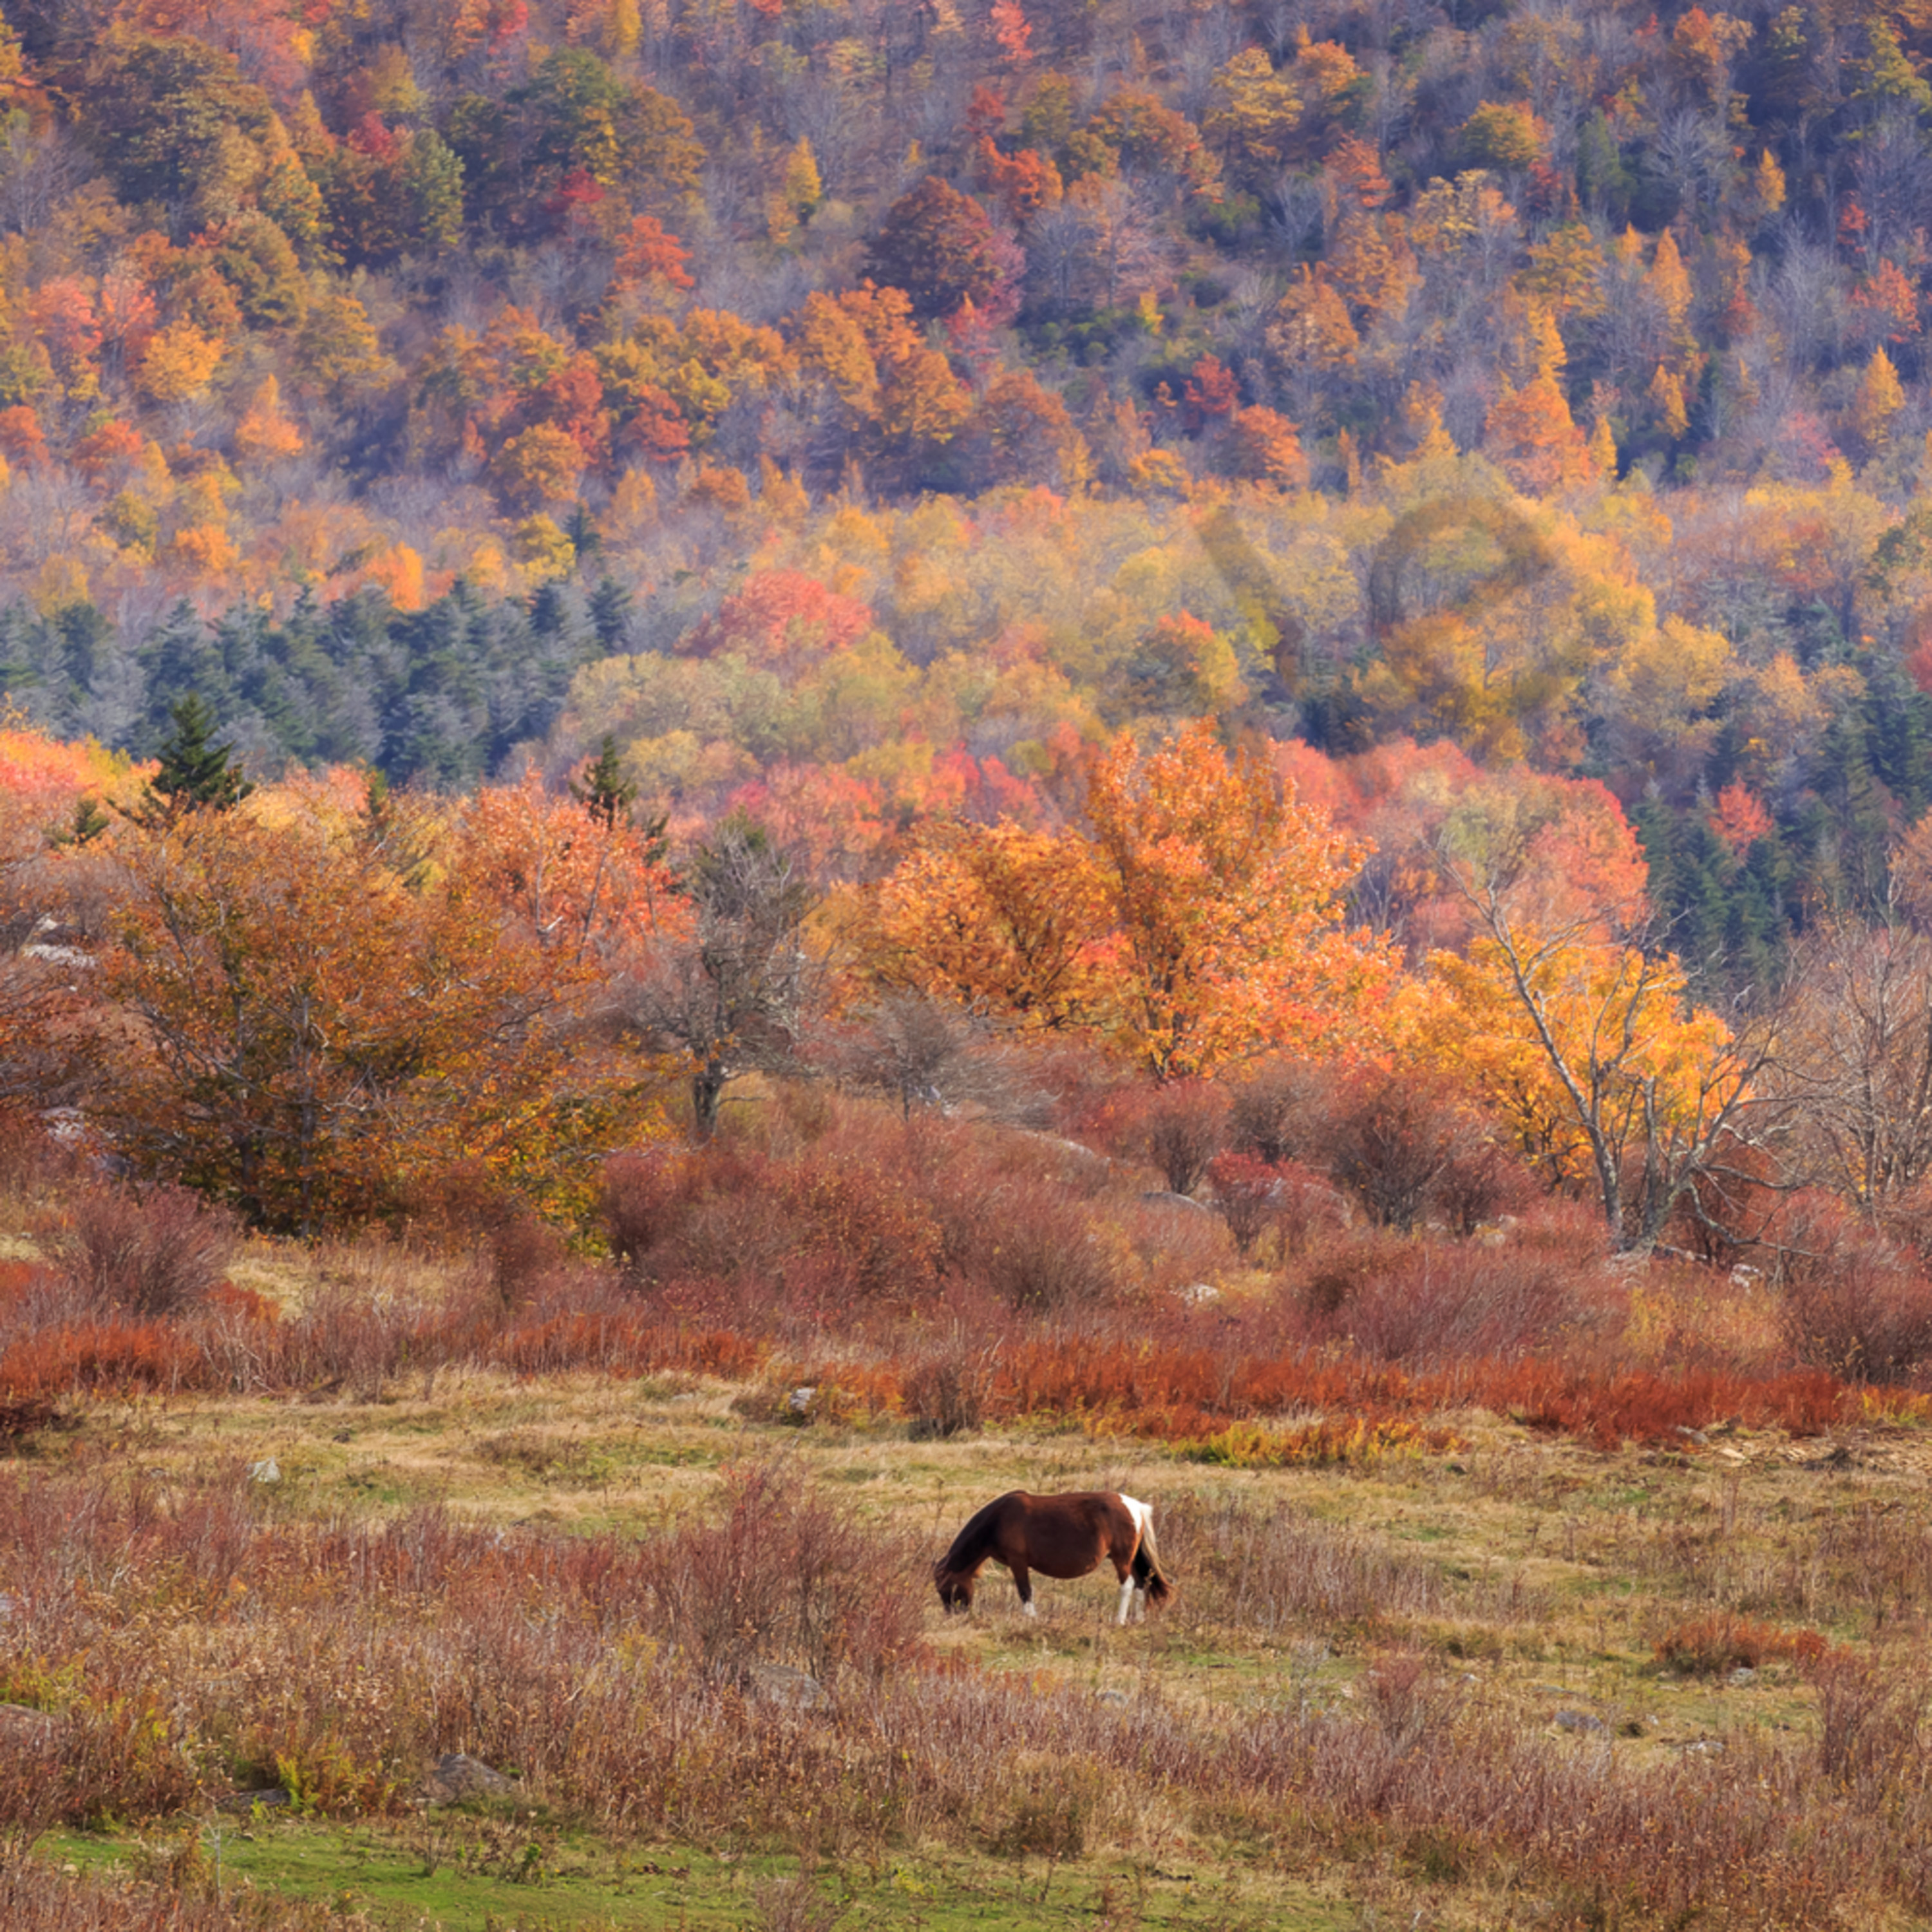 Grazing on colorful mountain urb7up